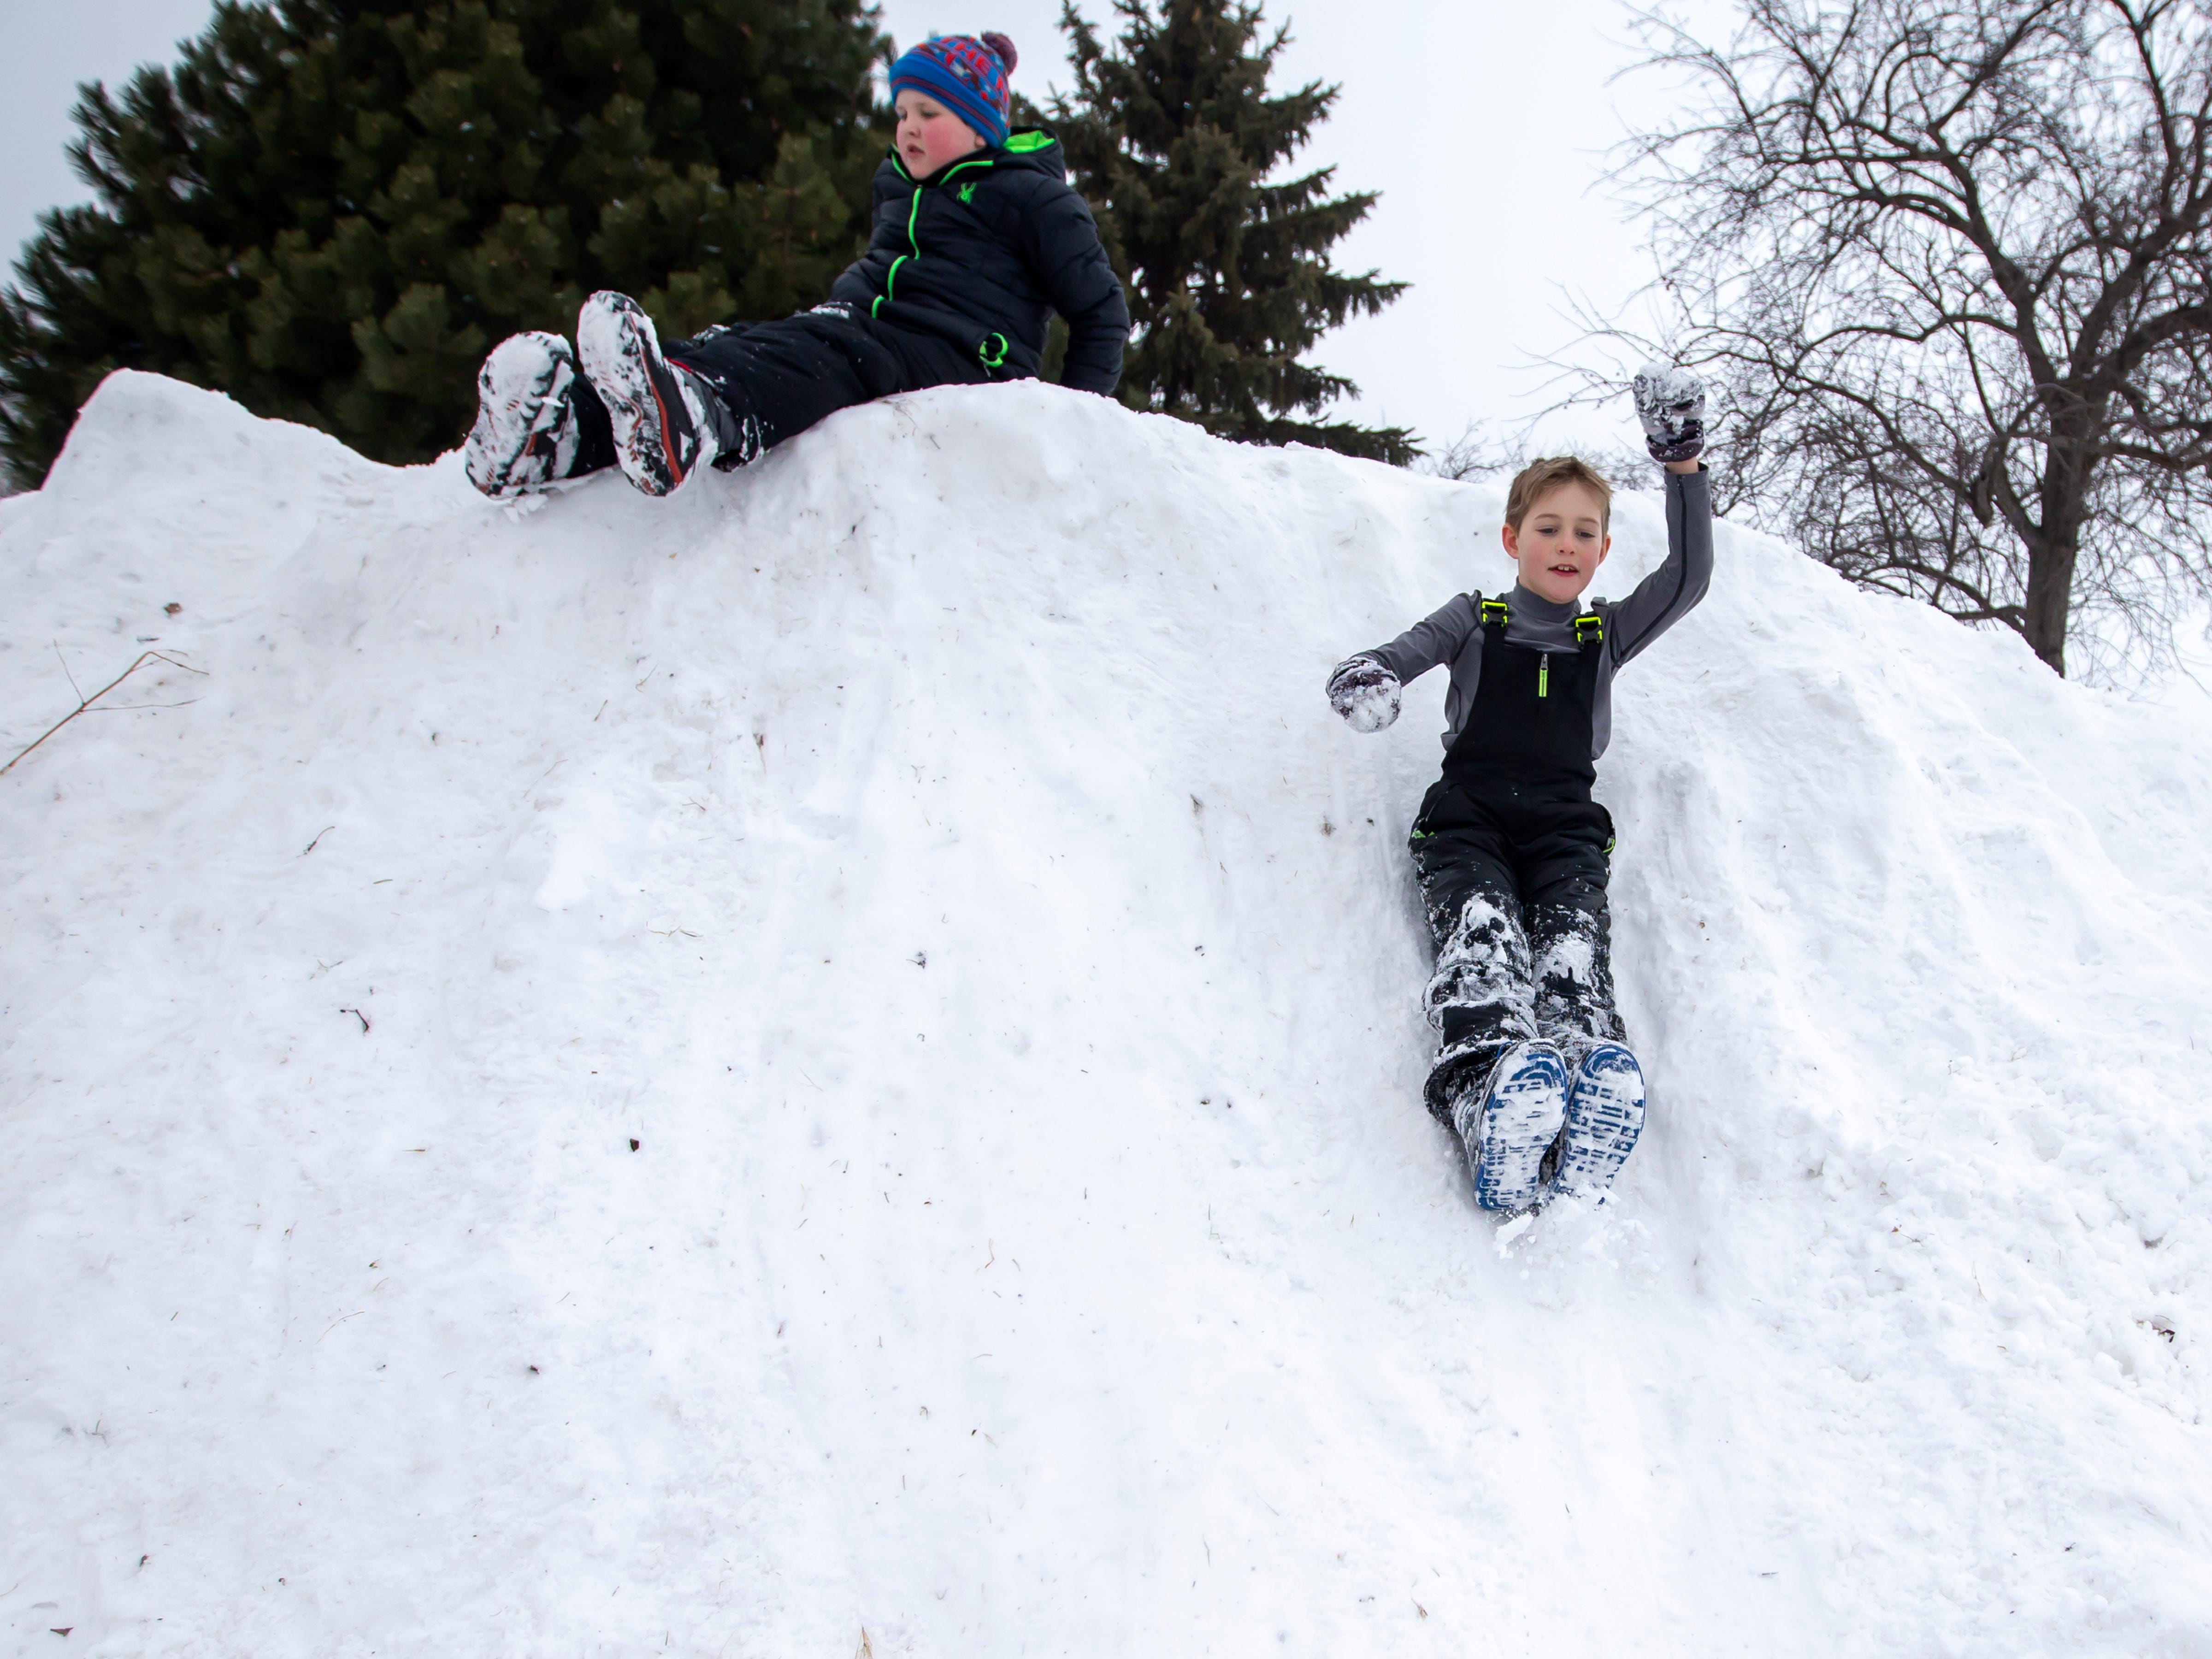 Jayden Kratzke slides down a snow pile during the Otter Street Fishing Club Winter Fisheree at Miller's Bay in Menominee Park on Saturday, Feb. 2, 2019.